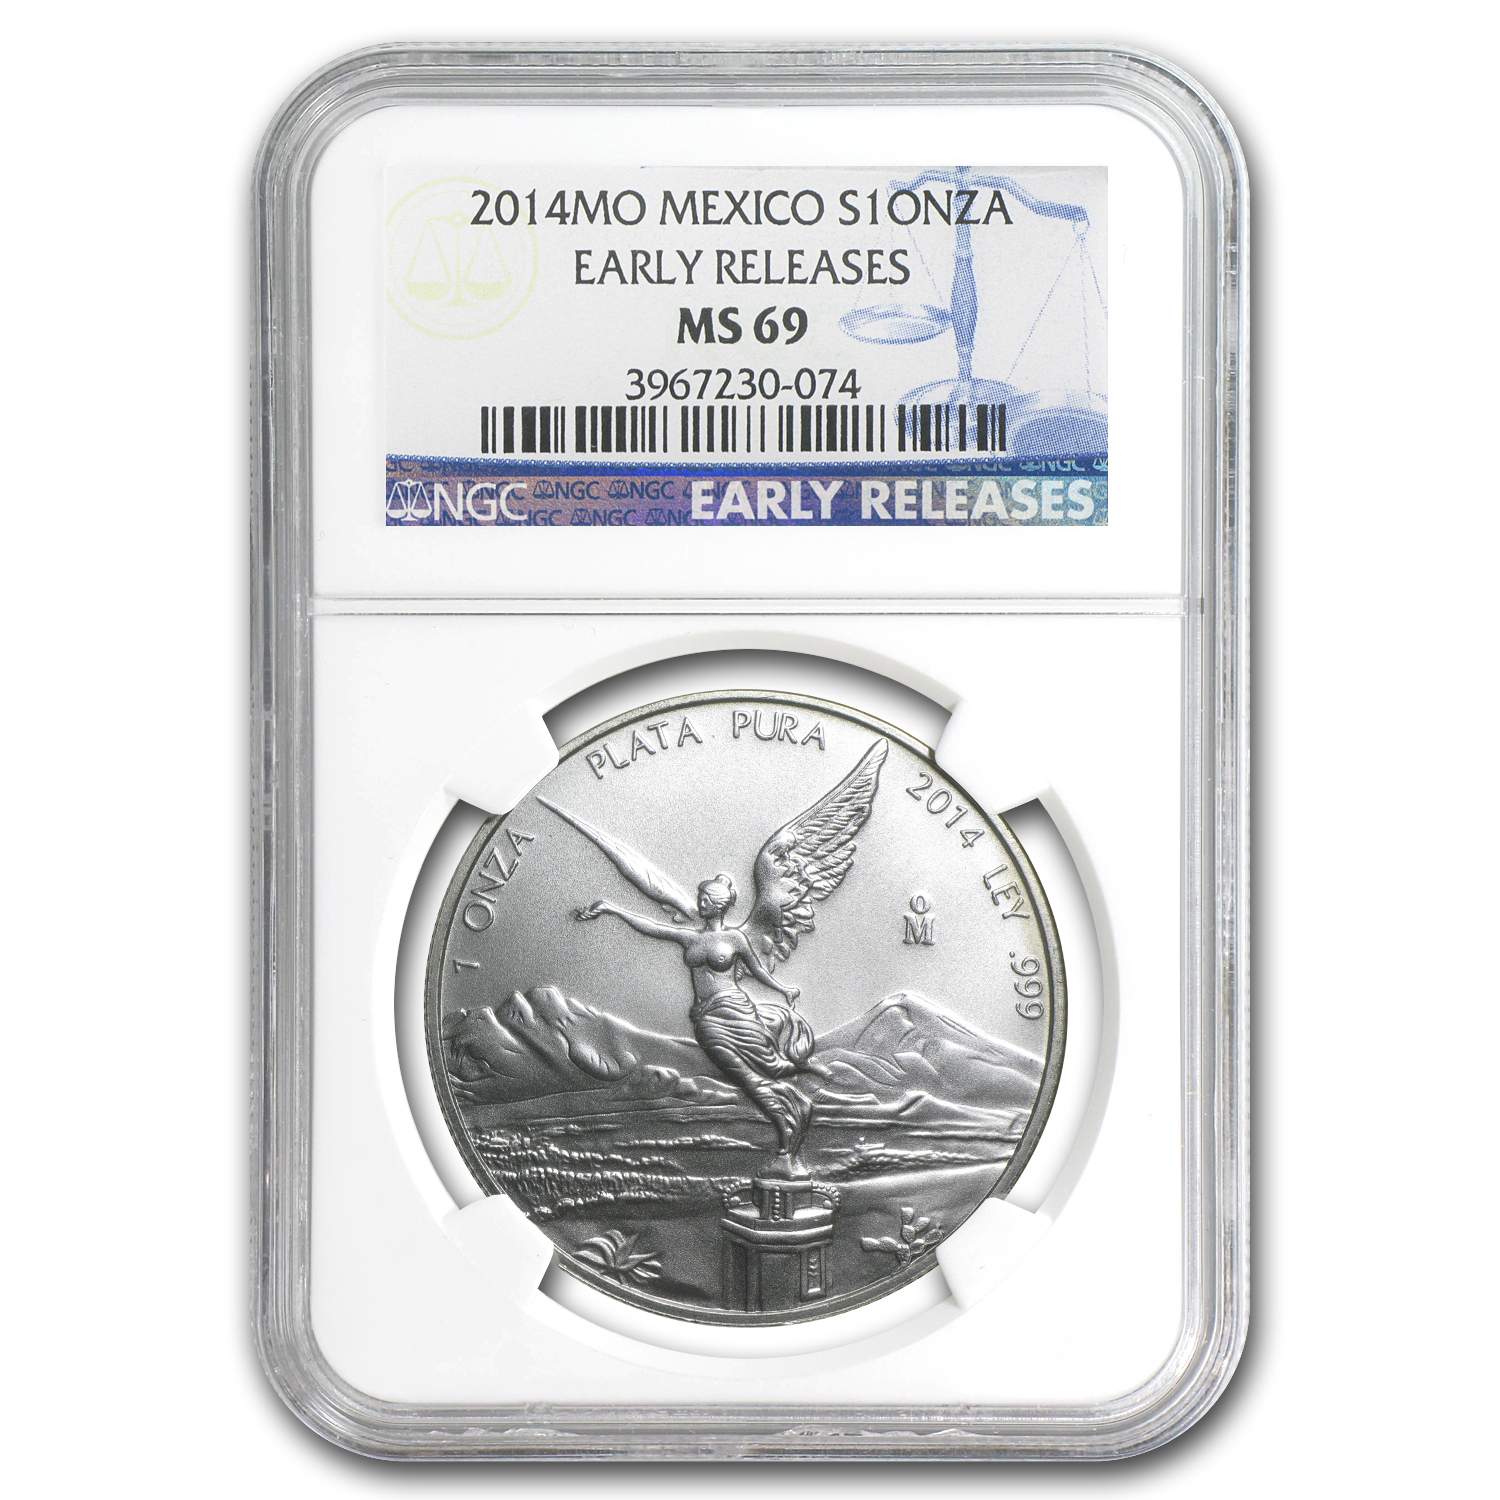 2014 Mexico 1 oz Silver Libertad MS-69 NGC (Early Releases)